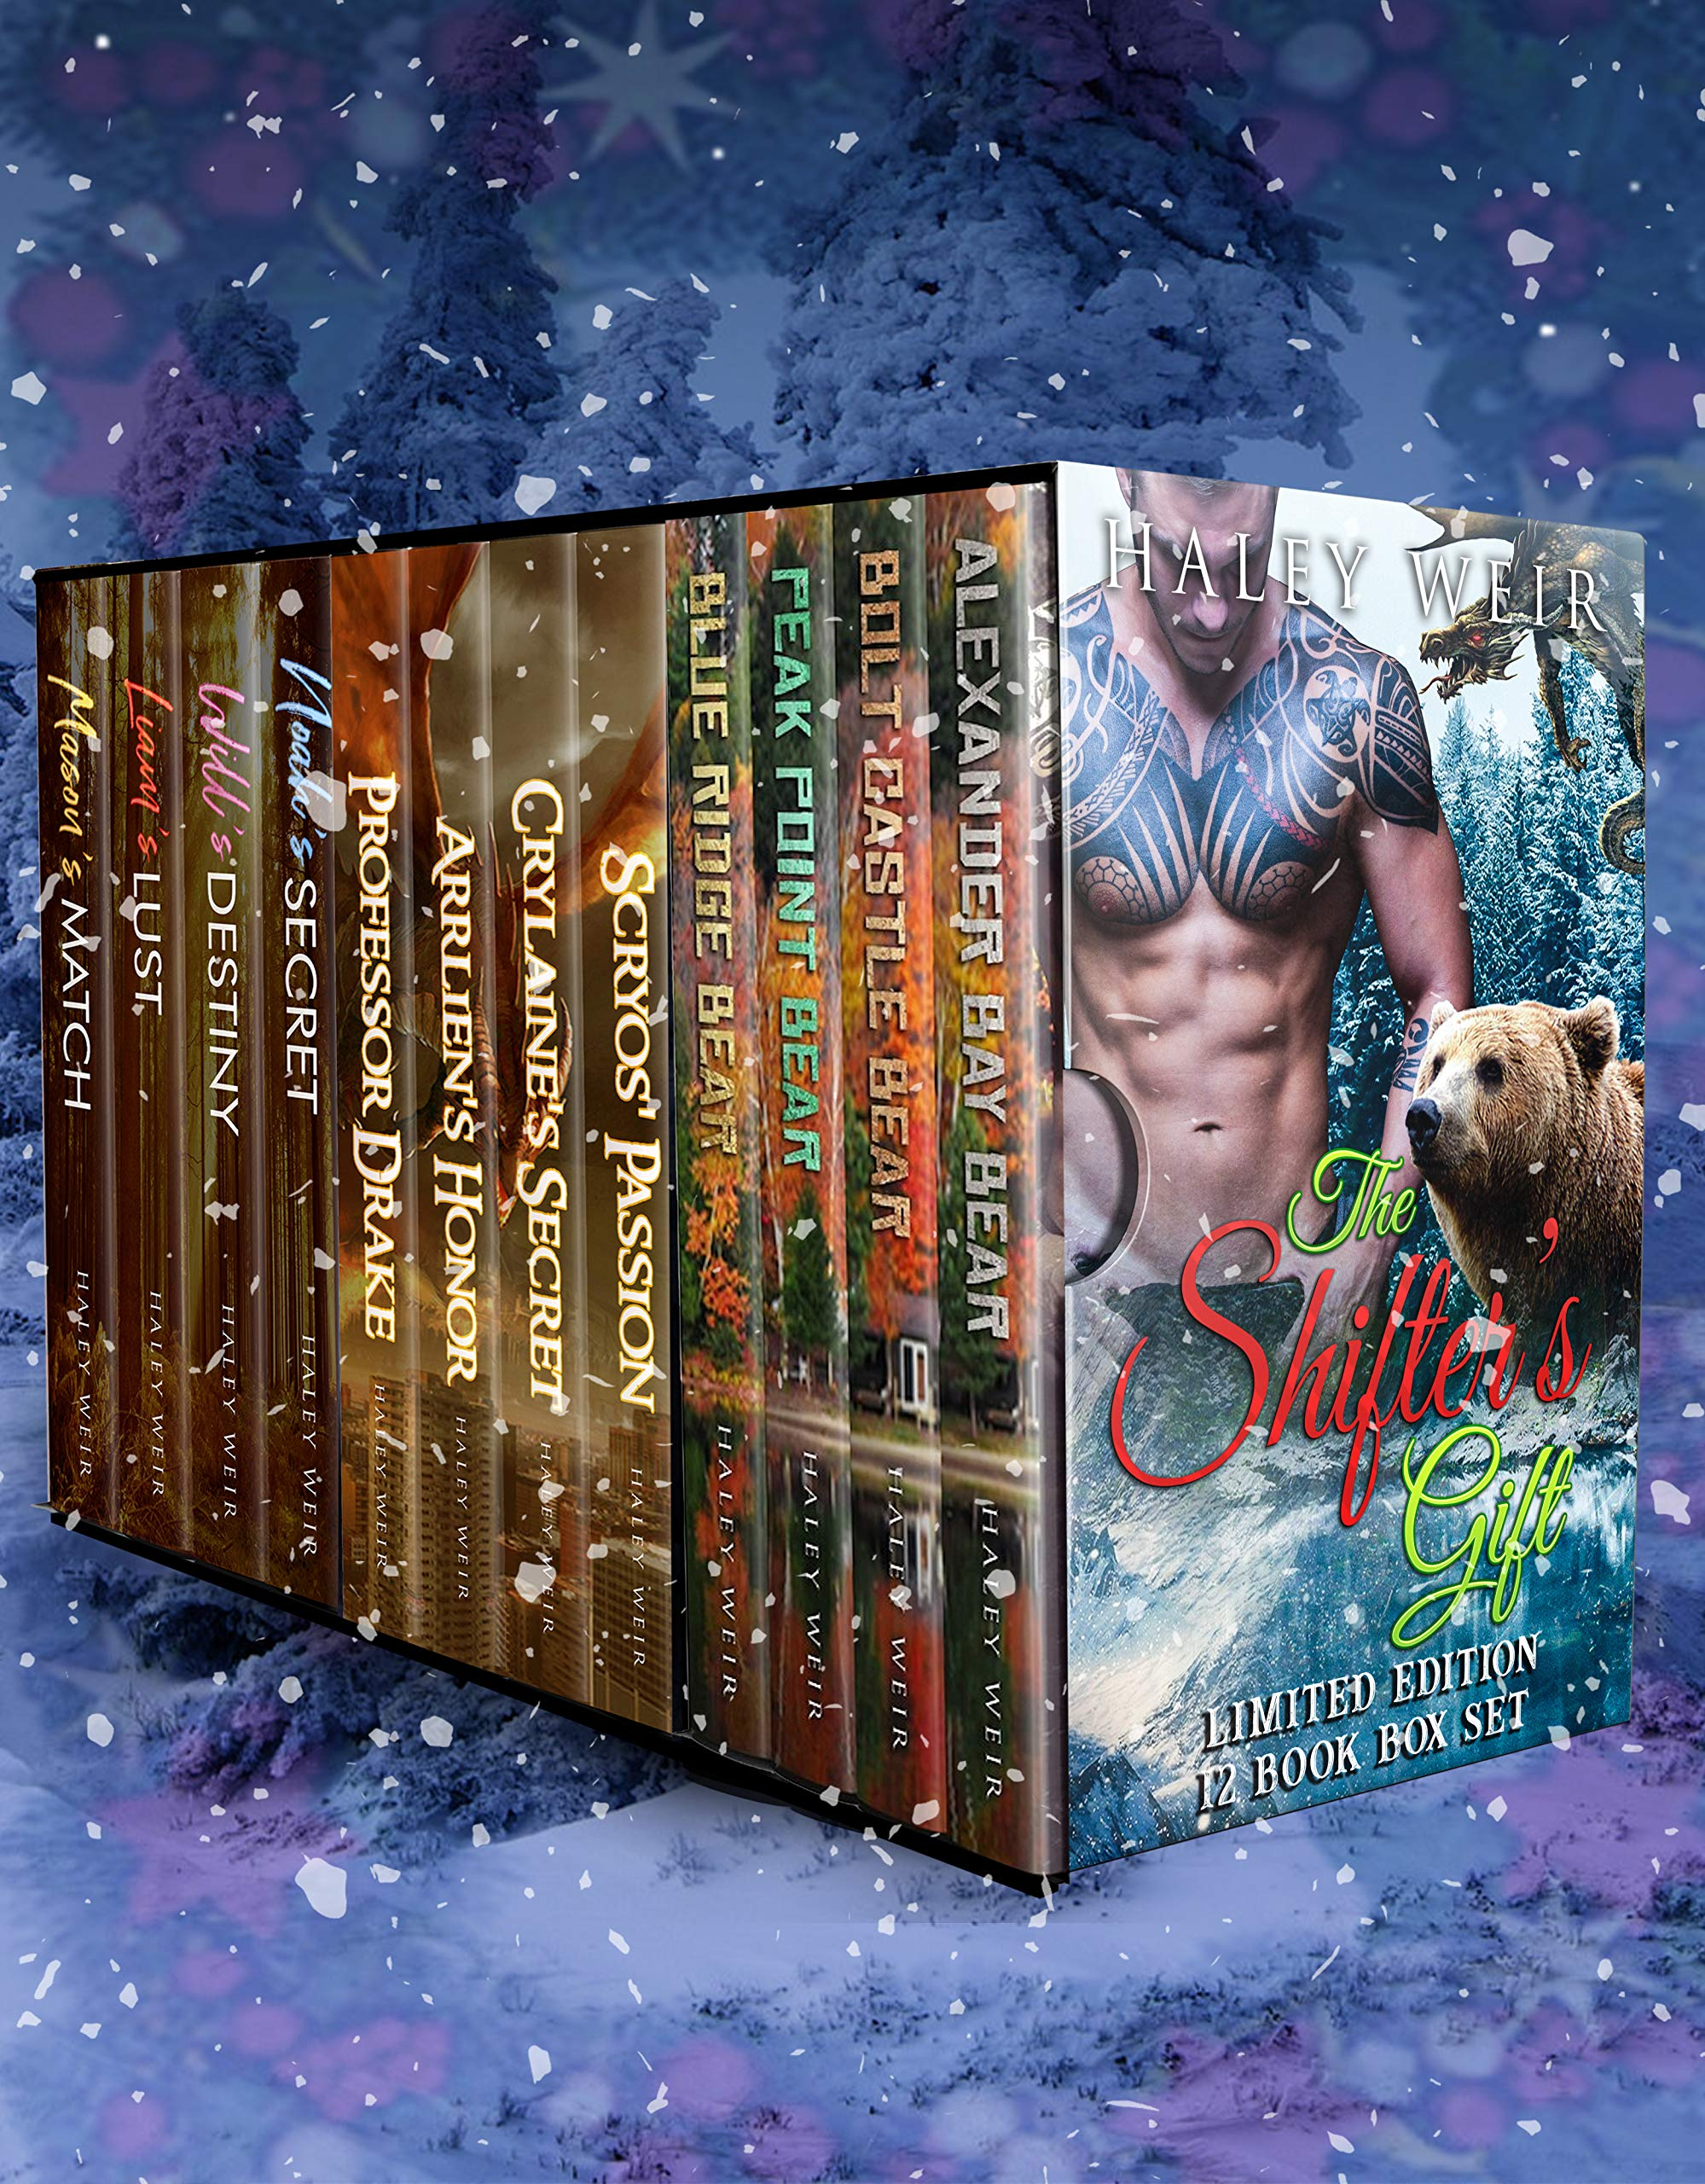 The Shifter's Gift  Limited Edition 12 Book Holiday Box Set  English Edition